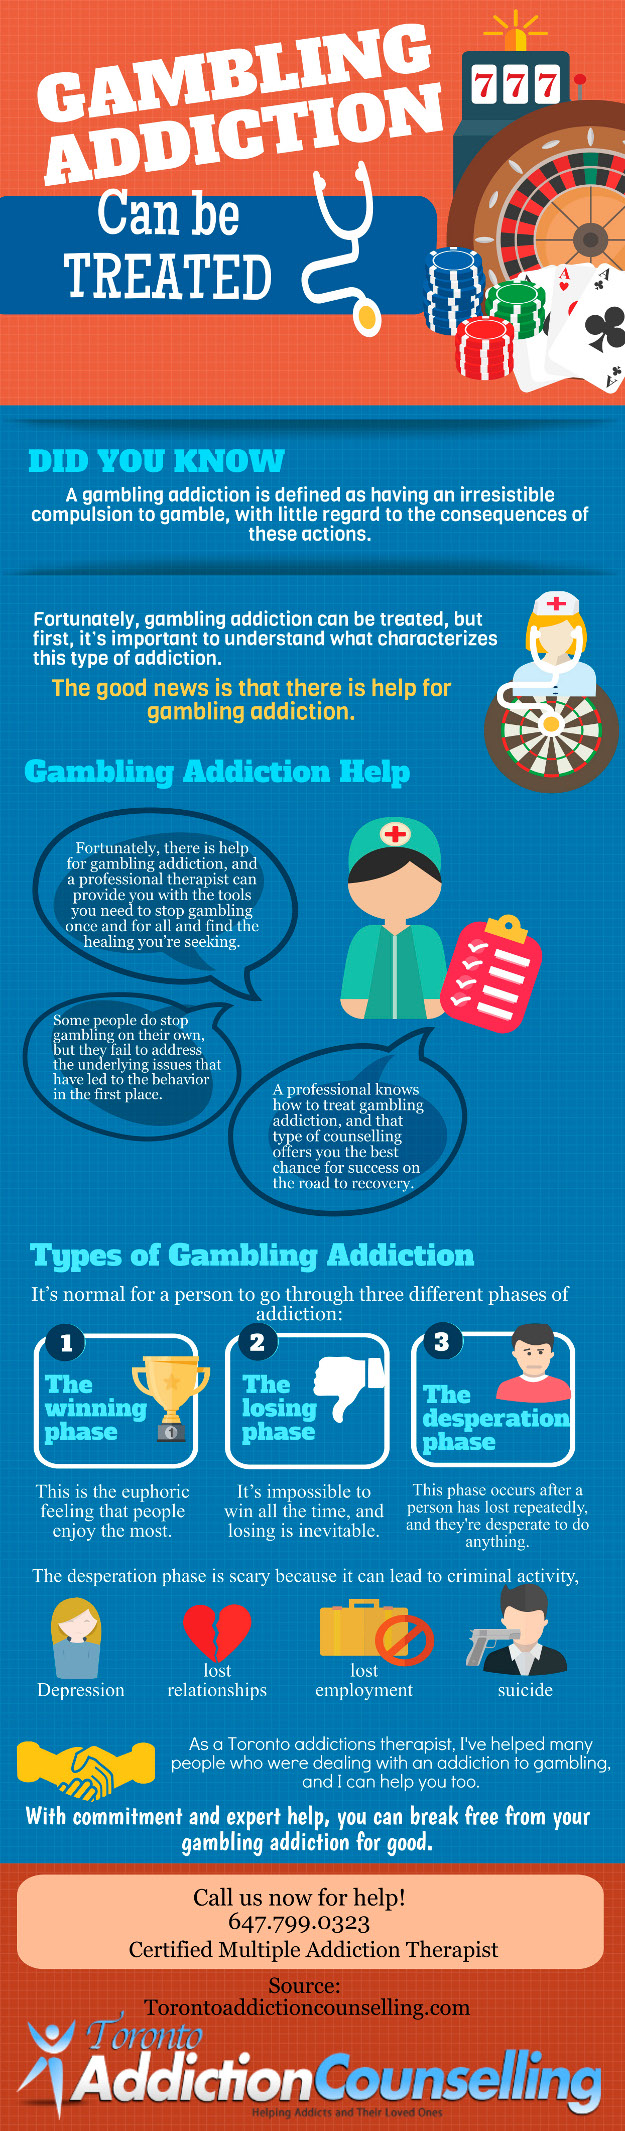 Gambling assistance